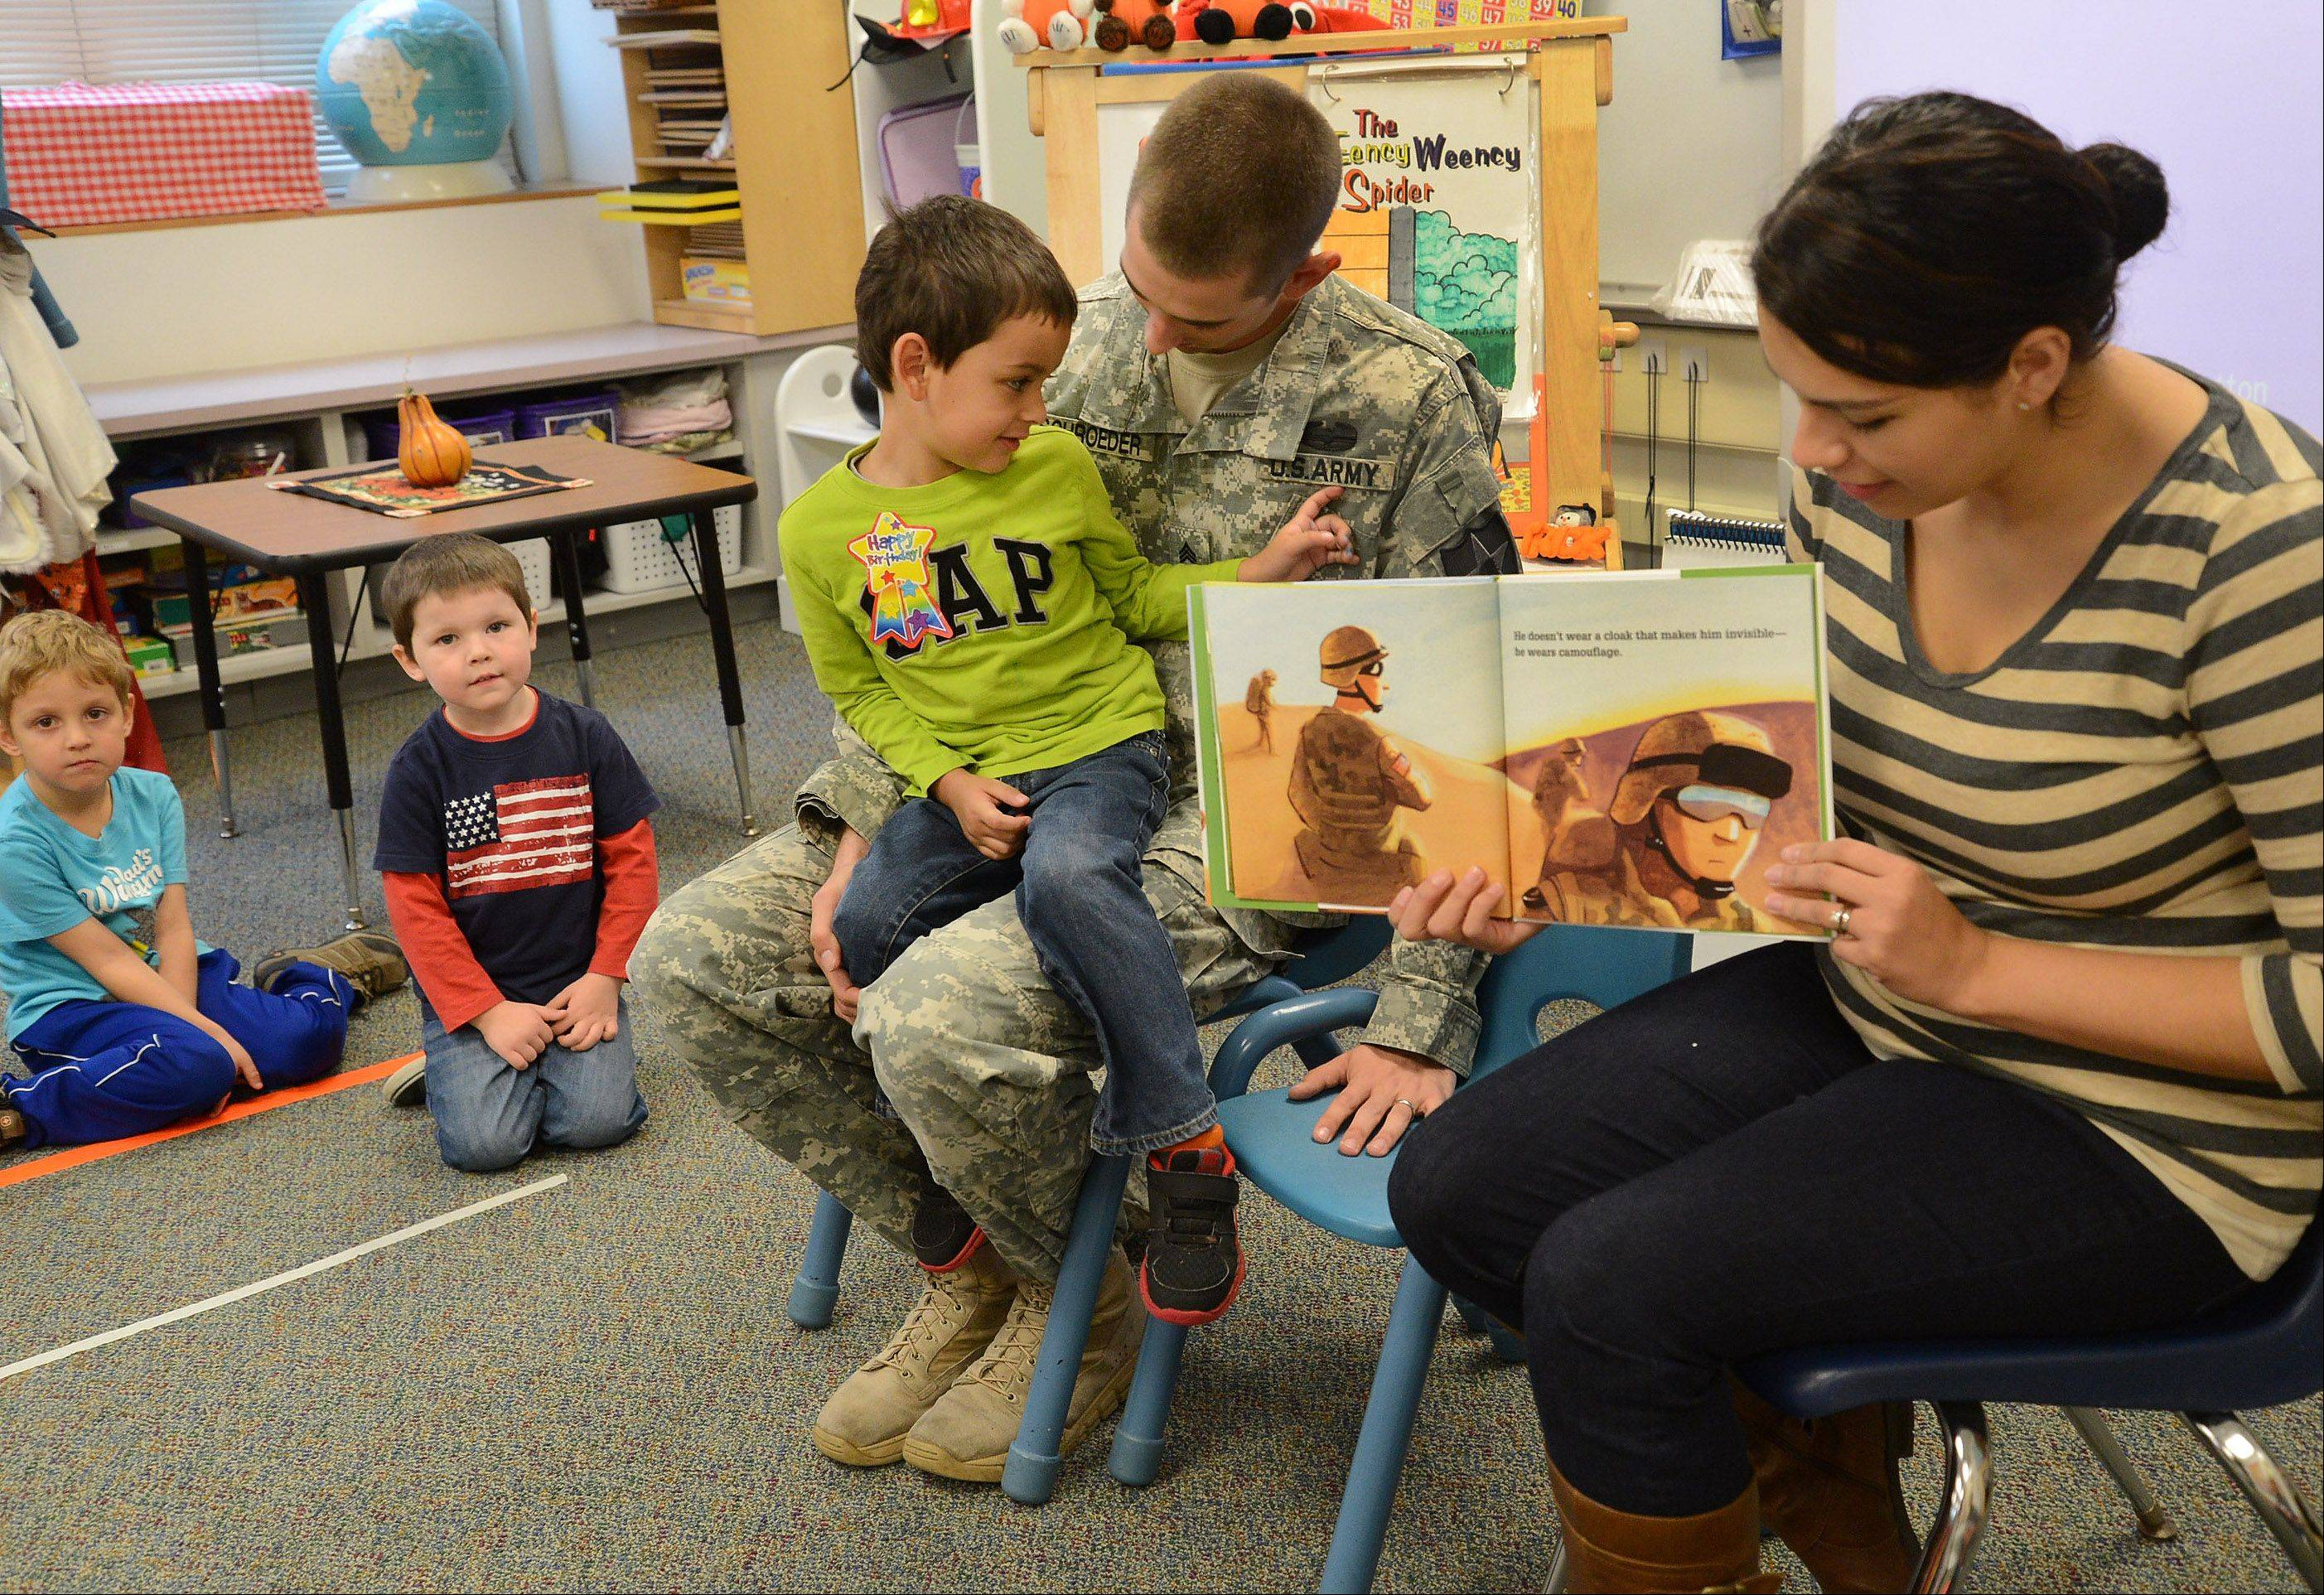 "U.S. Army Sgt. Robert Schroeder of Lake Barrington received a hero's welcome Wednesday at St. Anne Parish School in Barrington. Schroeder had planned to surprise his son William, a pre-Kindergarten student at the school, with his return for a two-week leave, but instead students and staff surprised him with their greeting. ""It's been shocking and an honor,"" he said."